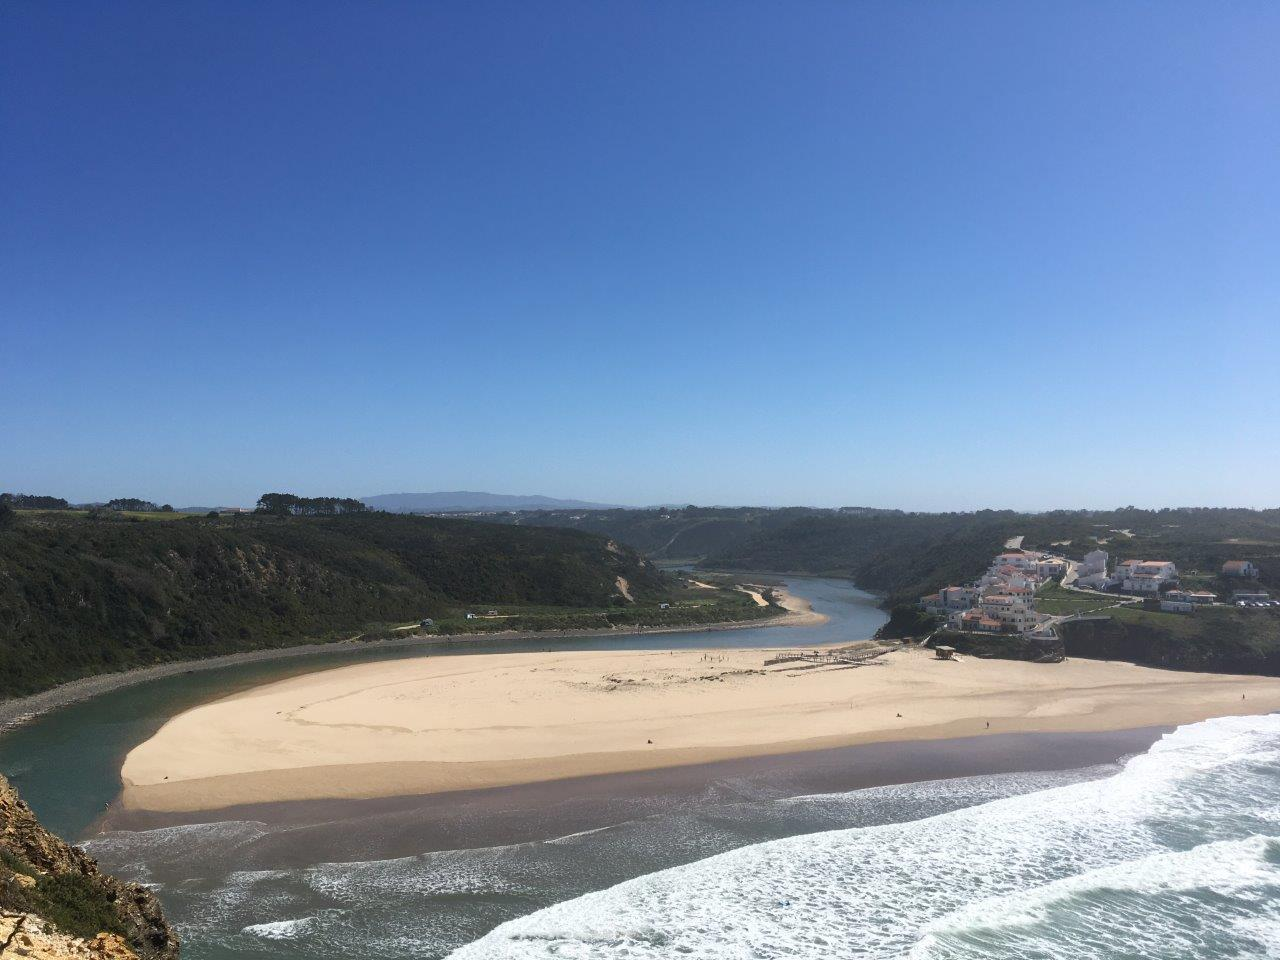 The river and Odeceixe beach with ocean waves on the Costa Vicentina